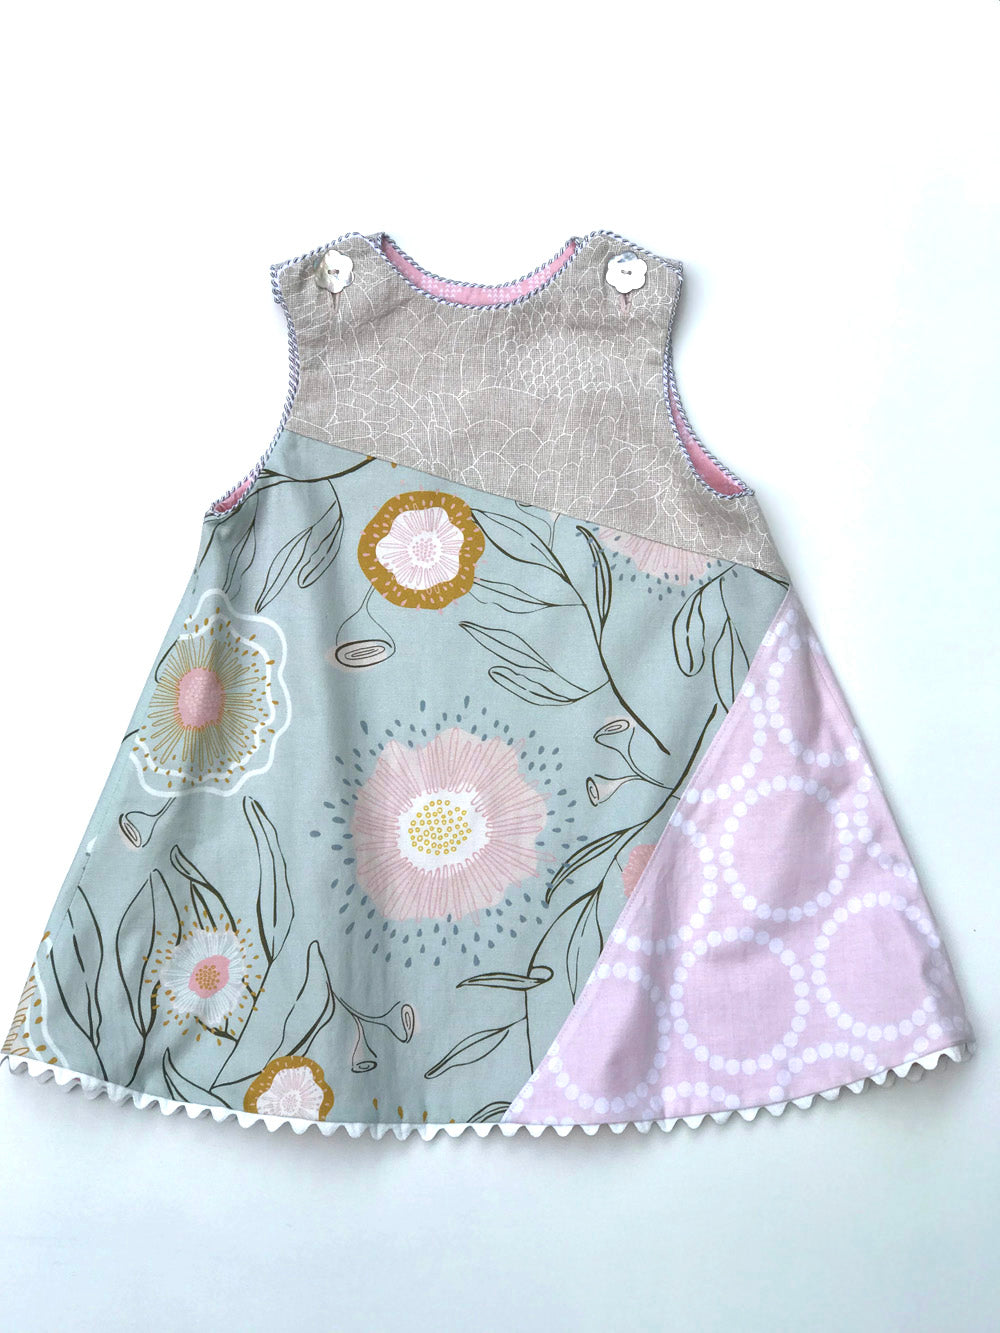 reversible asymmetric dress in silver gray and pink, LIMITED EDITION - little girl Pearl